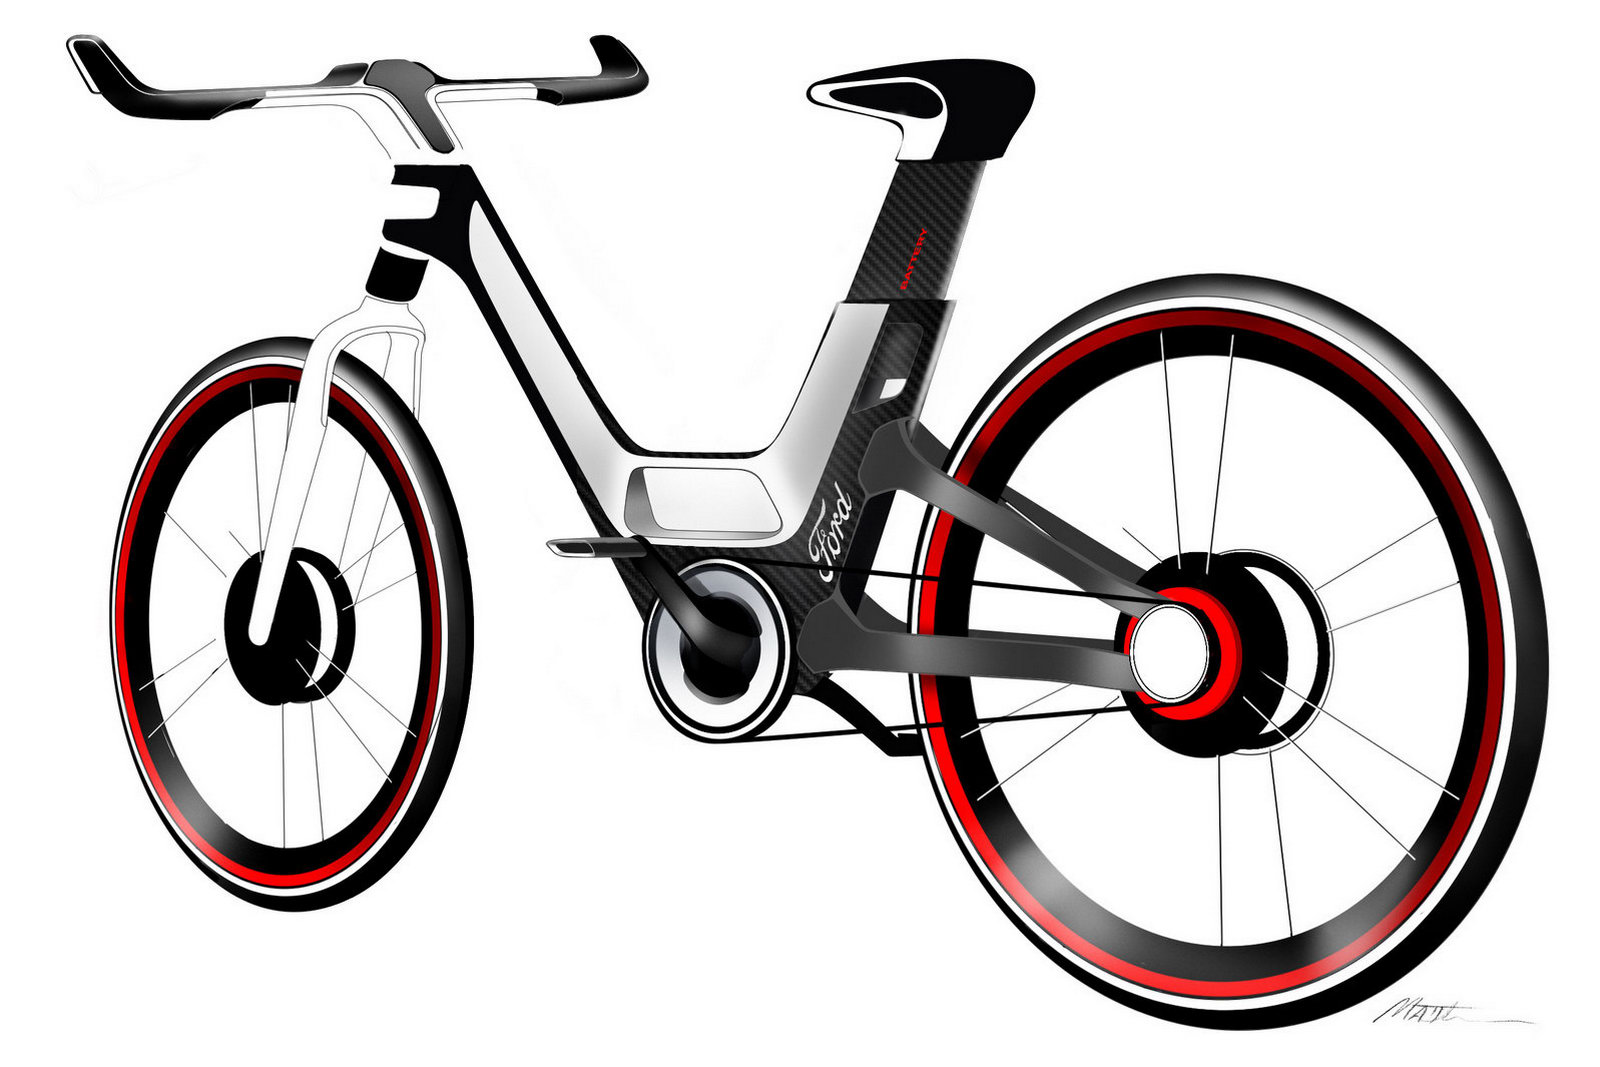 Ford Electric bike concept Ford to introduce 2011 Electric bike concept in Frankfurt Motor show